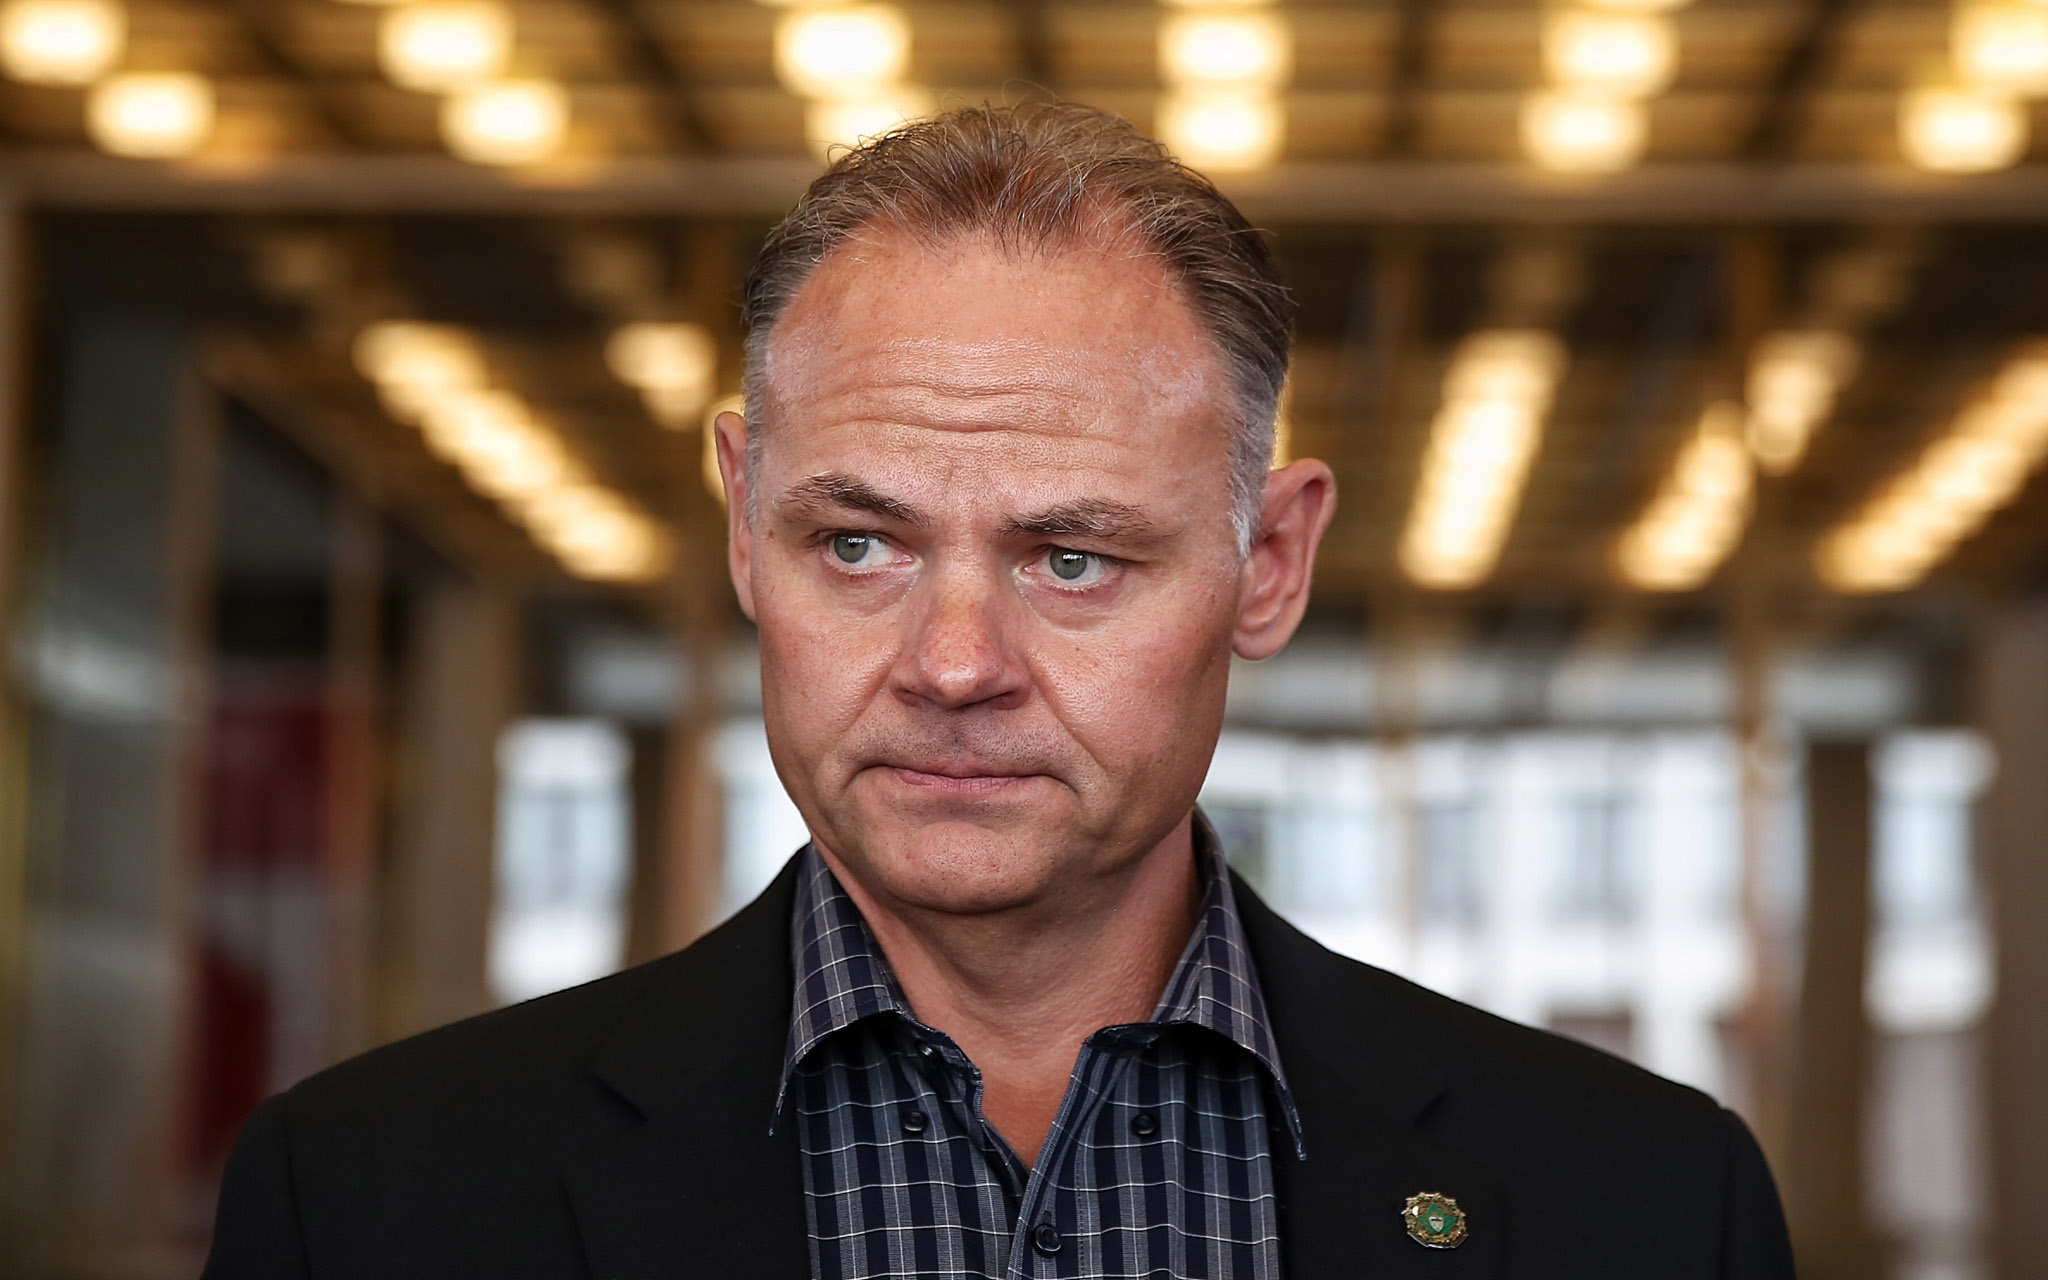 Winnipeg Police Association president Maurice Sabourin said the union will fight the decision with all legal means at its disposal, claiming the City of Winnipeg had no right to alter the pension plan outside of collective bargaining. (Mike Deal / Winnipeg Free Press)